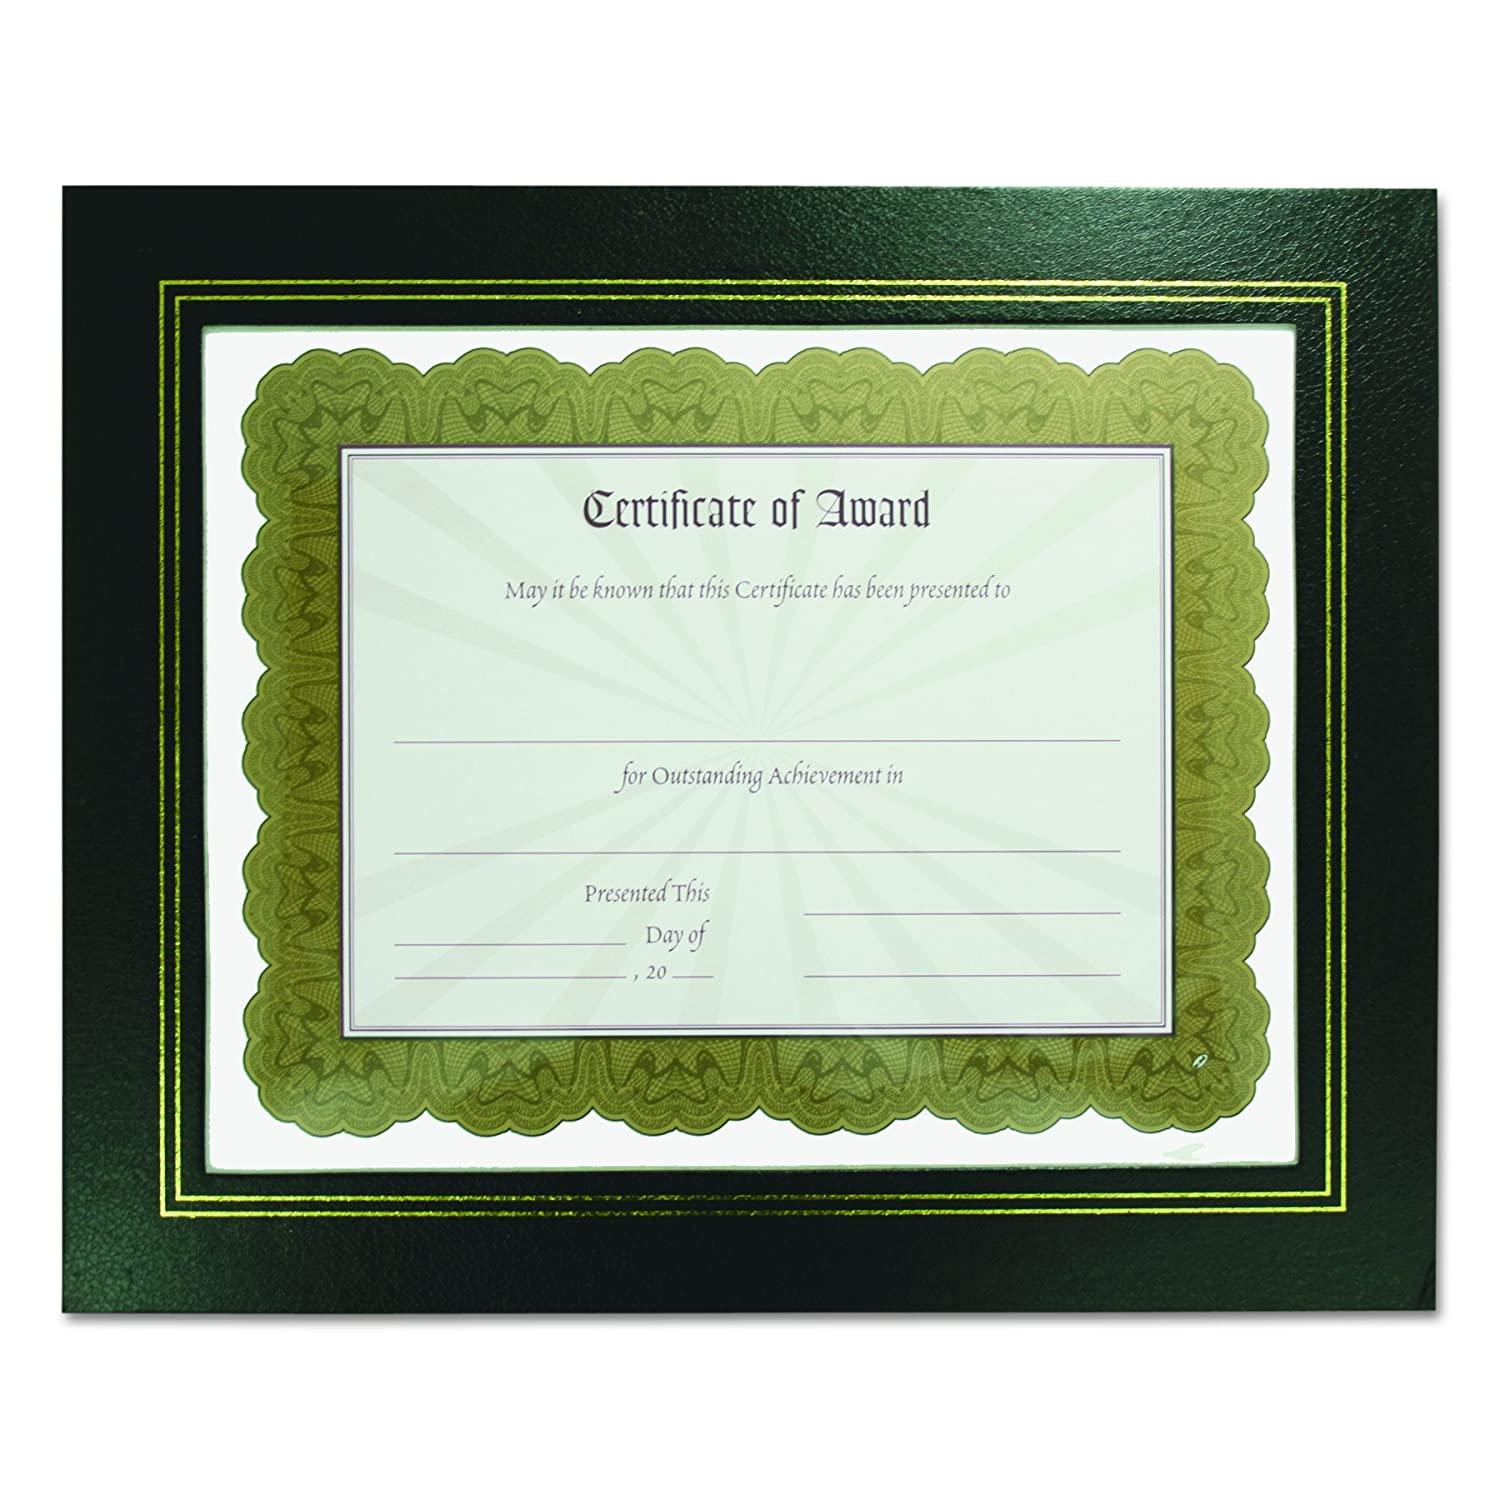 B00094GSGC NuDell 21202 Leatherette Document Frame, 8-1/2 x 11, Black (Pack of Two) 81i8q96rfaL